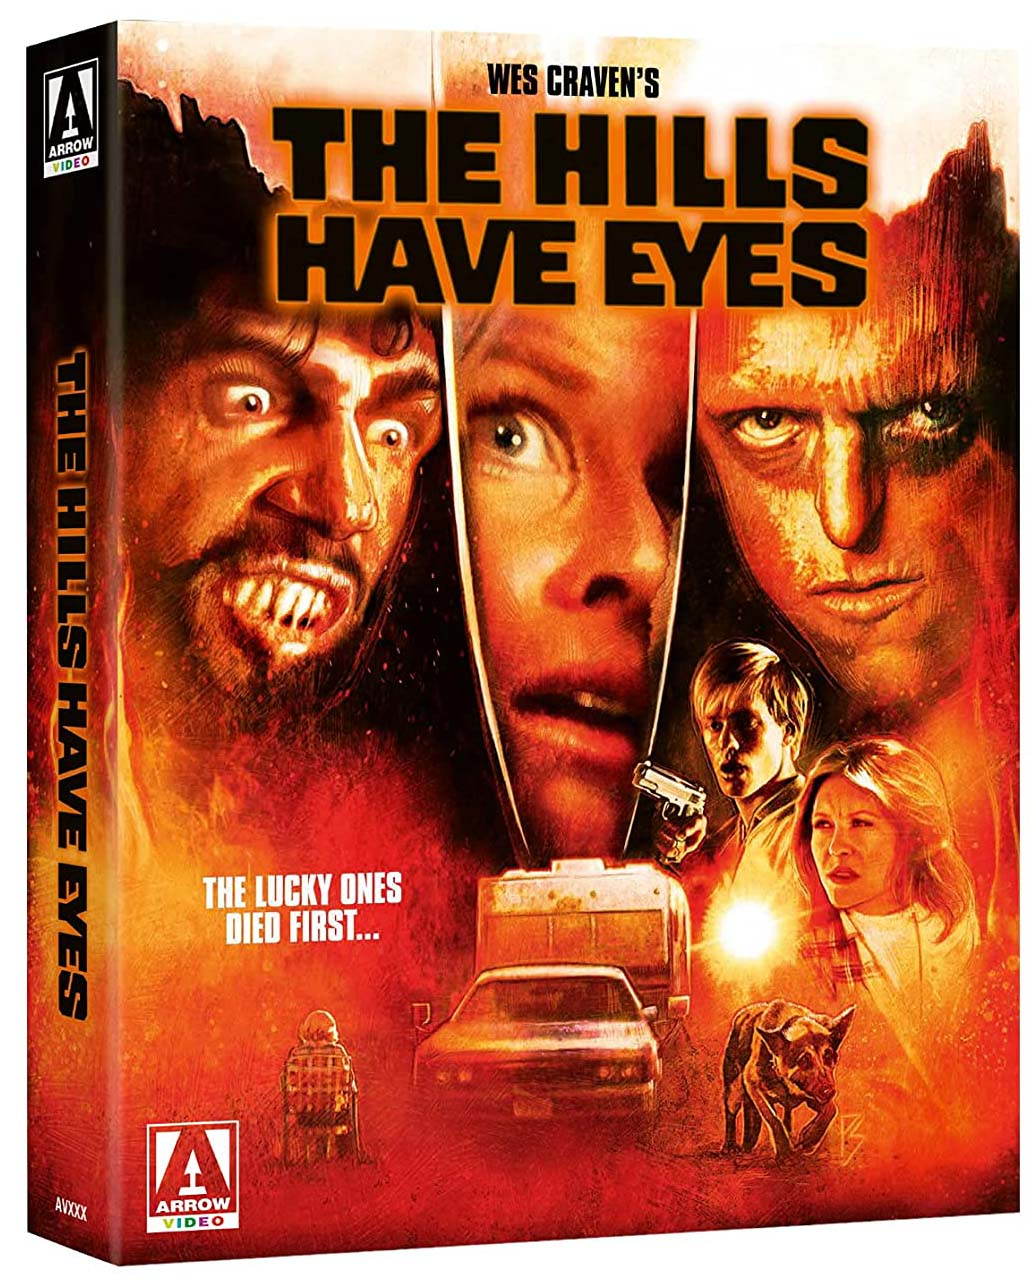 The Hills Have Eyes 4k Blu-ray Limited Edition